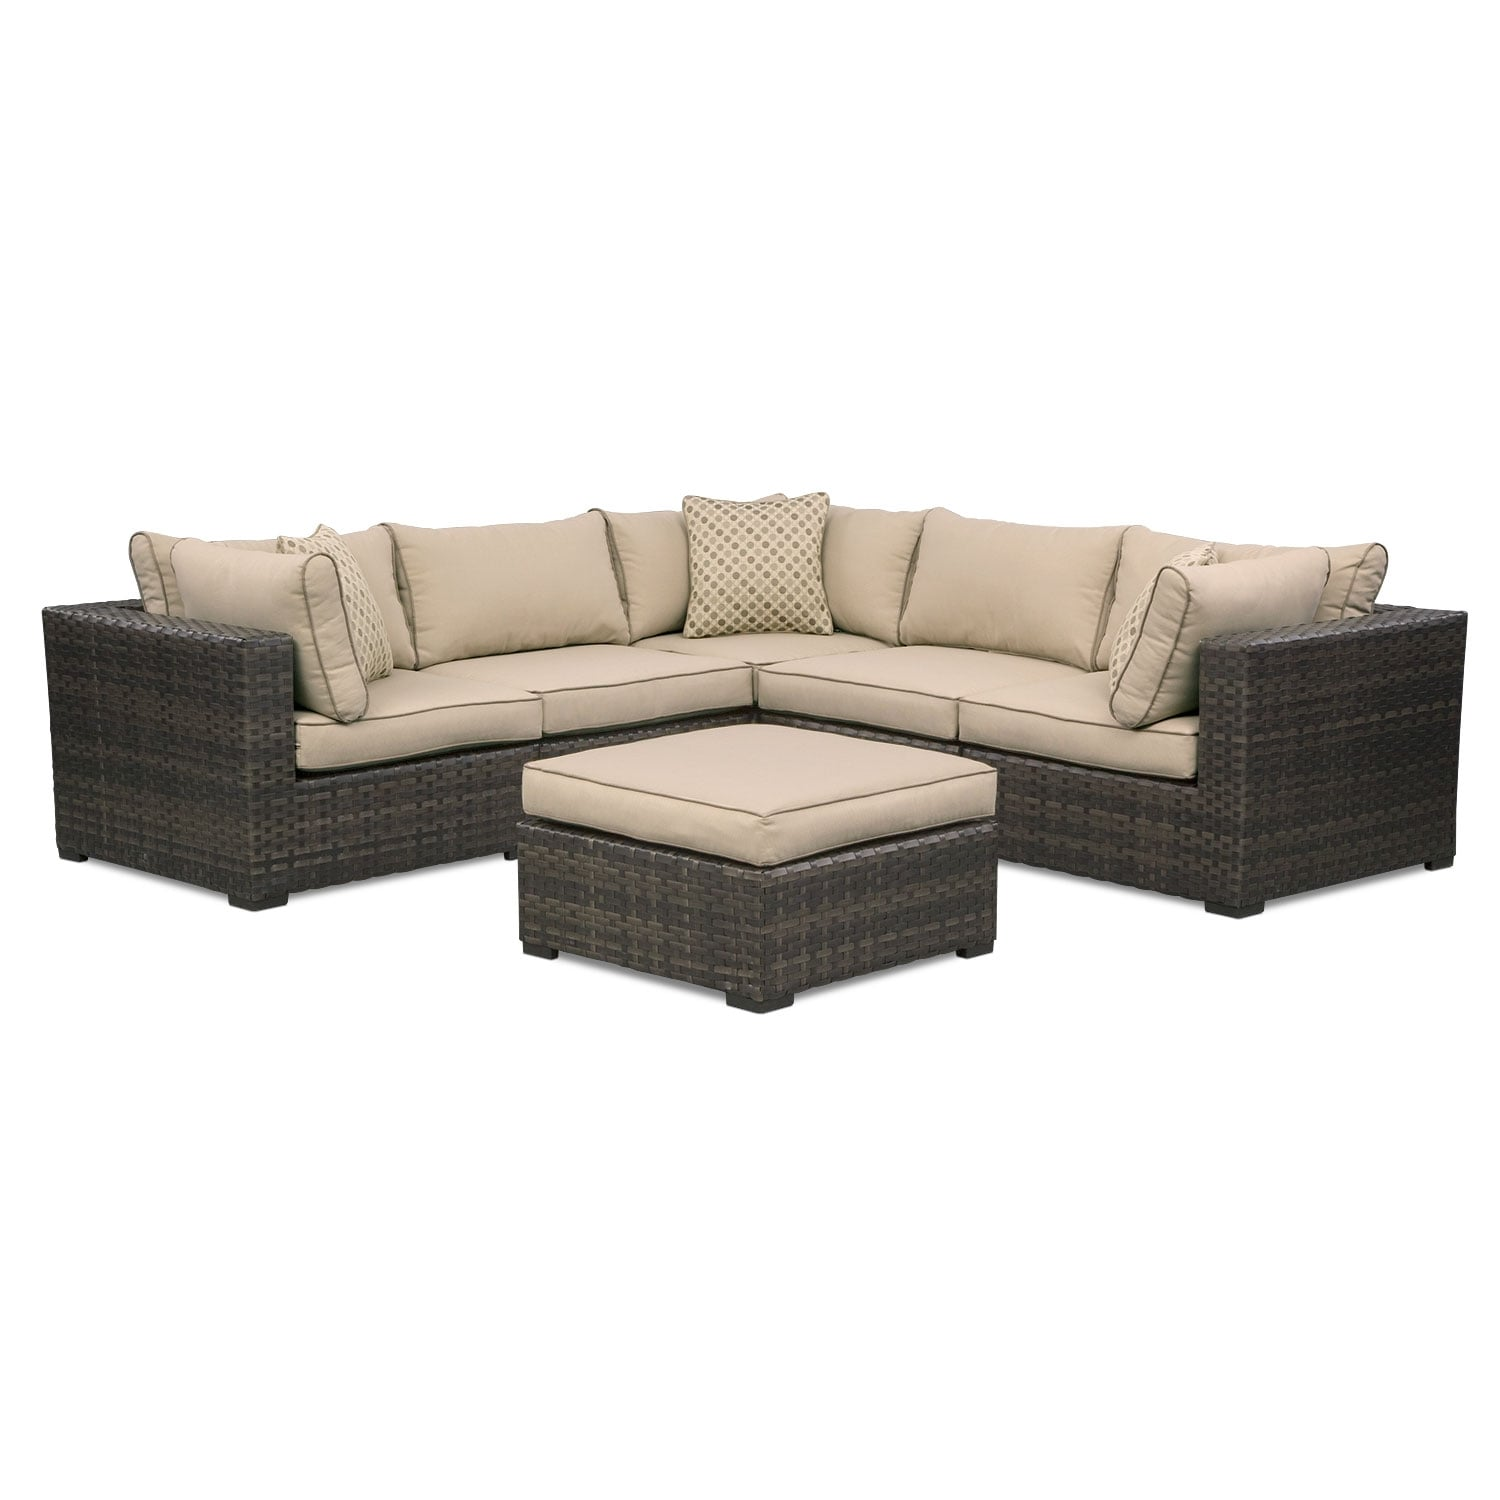 Outdoor Furniture - Regatta 5 Pc. Outdoor Sectional and Ottoman